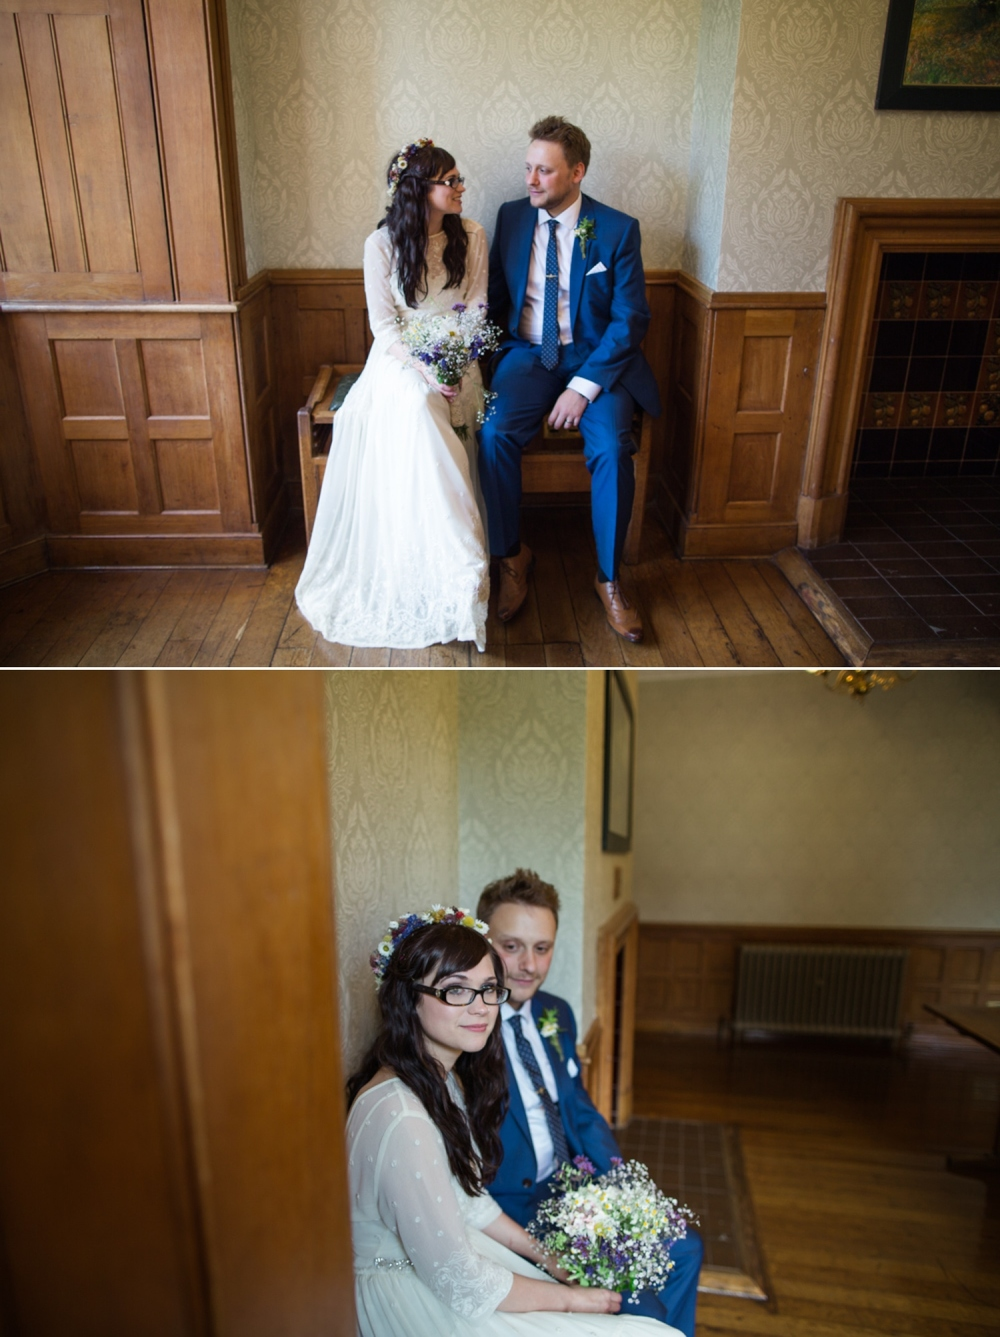 Somerset Wedding Photographer Elly & Liam_0021.jpg